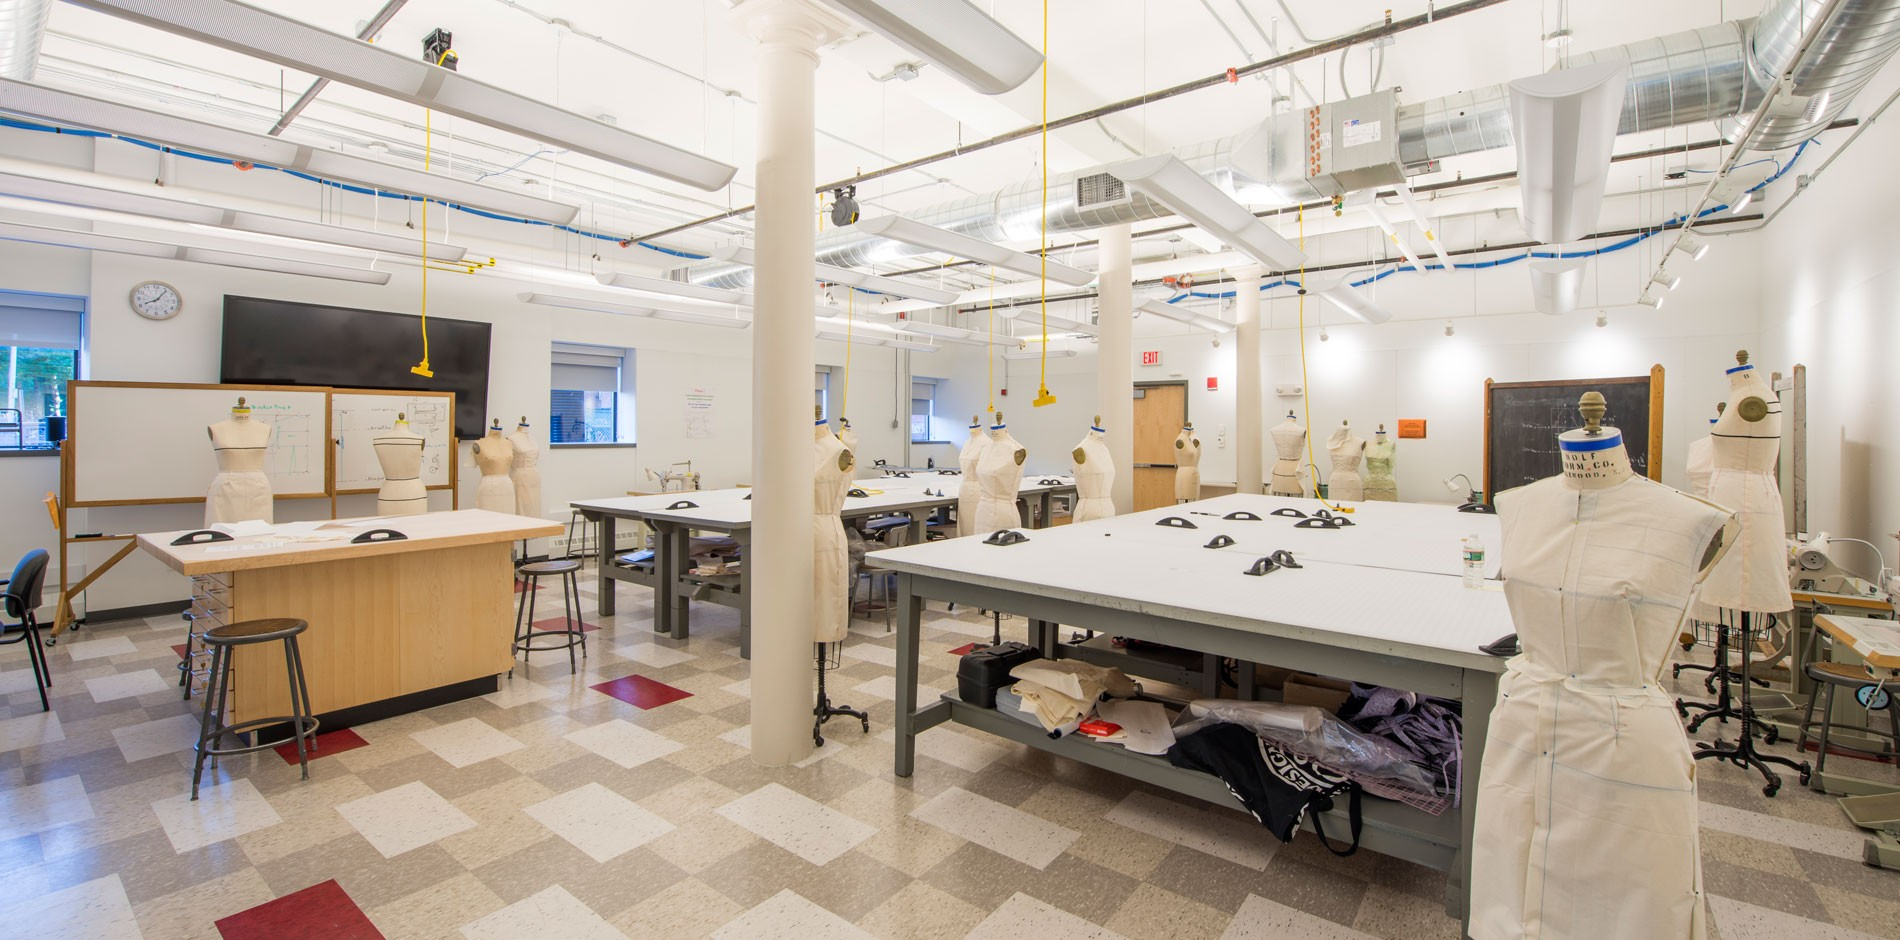 Rhode Island School Of Design Risd Apparel Design Department Renovation Shawmut